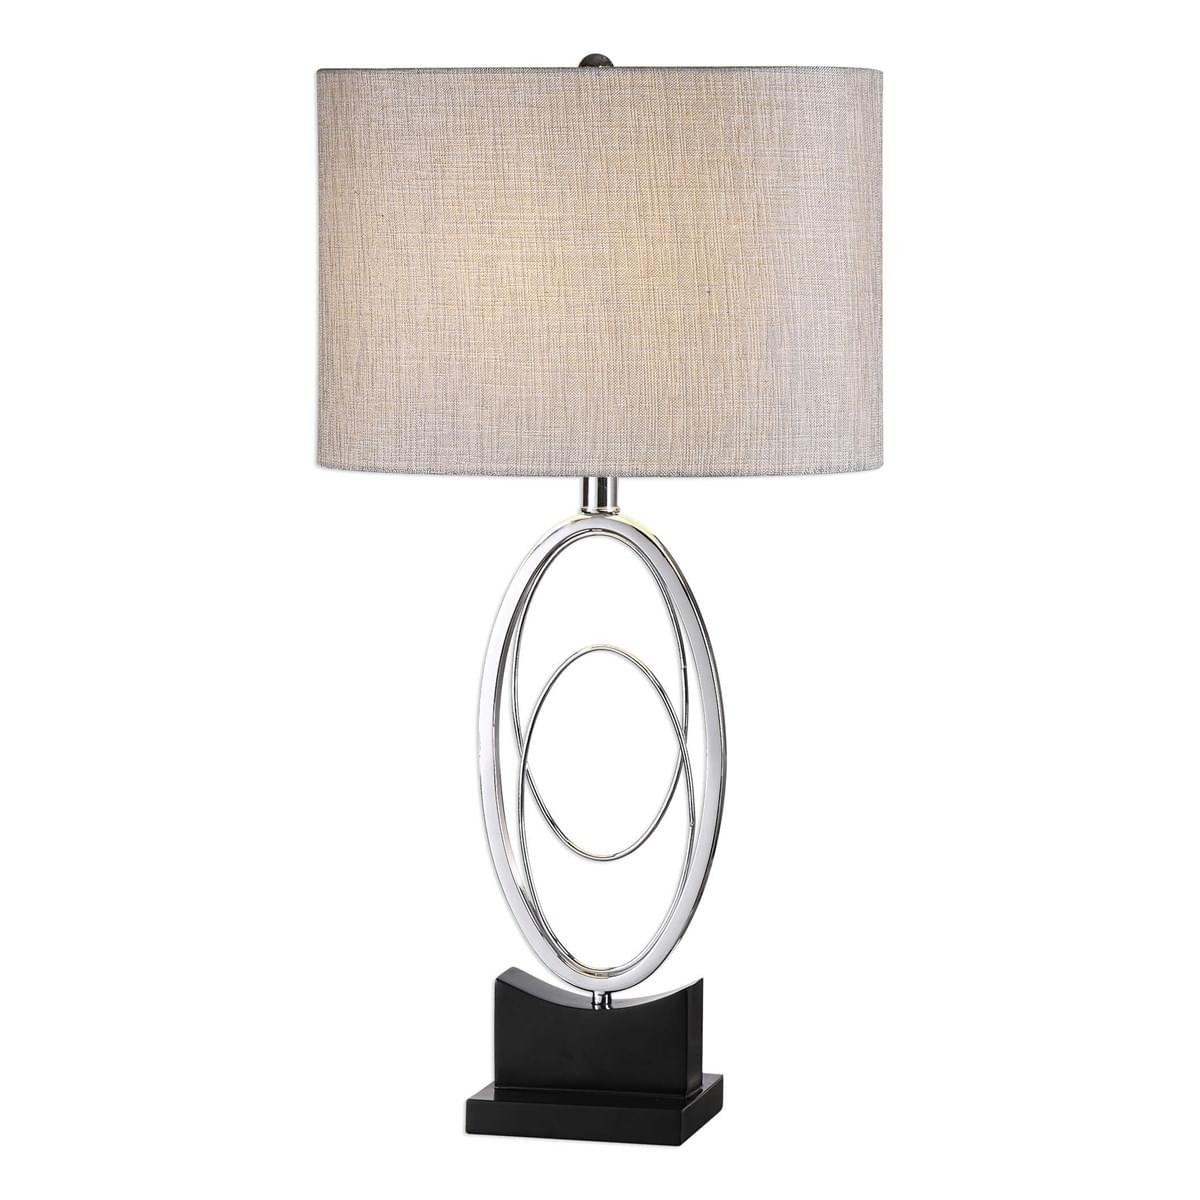 Uttermost Savant Table Lamp at Mums Place Furniture Monterey CA